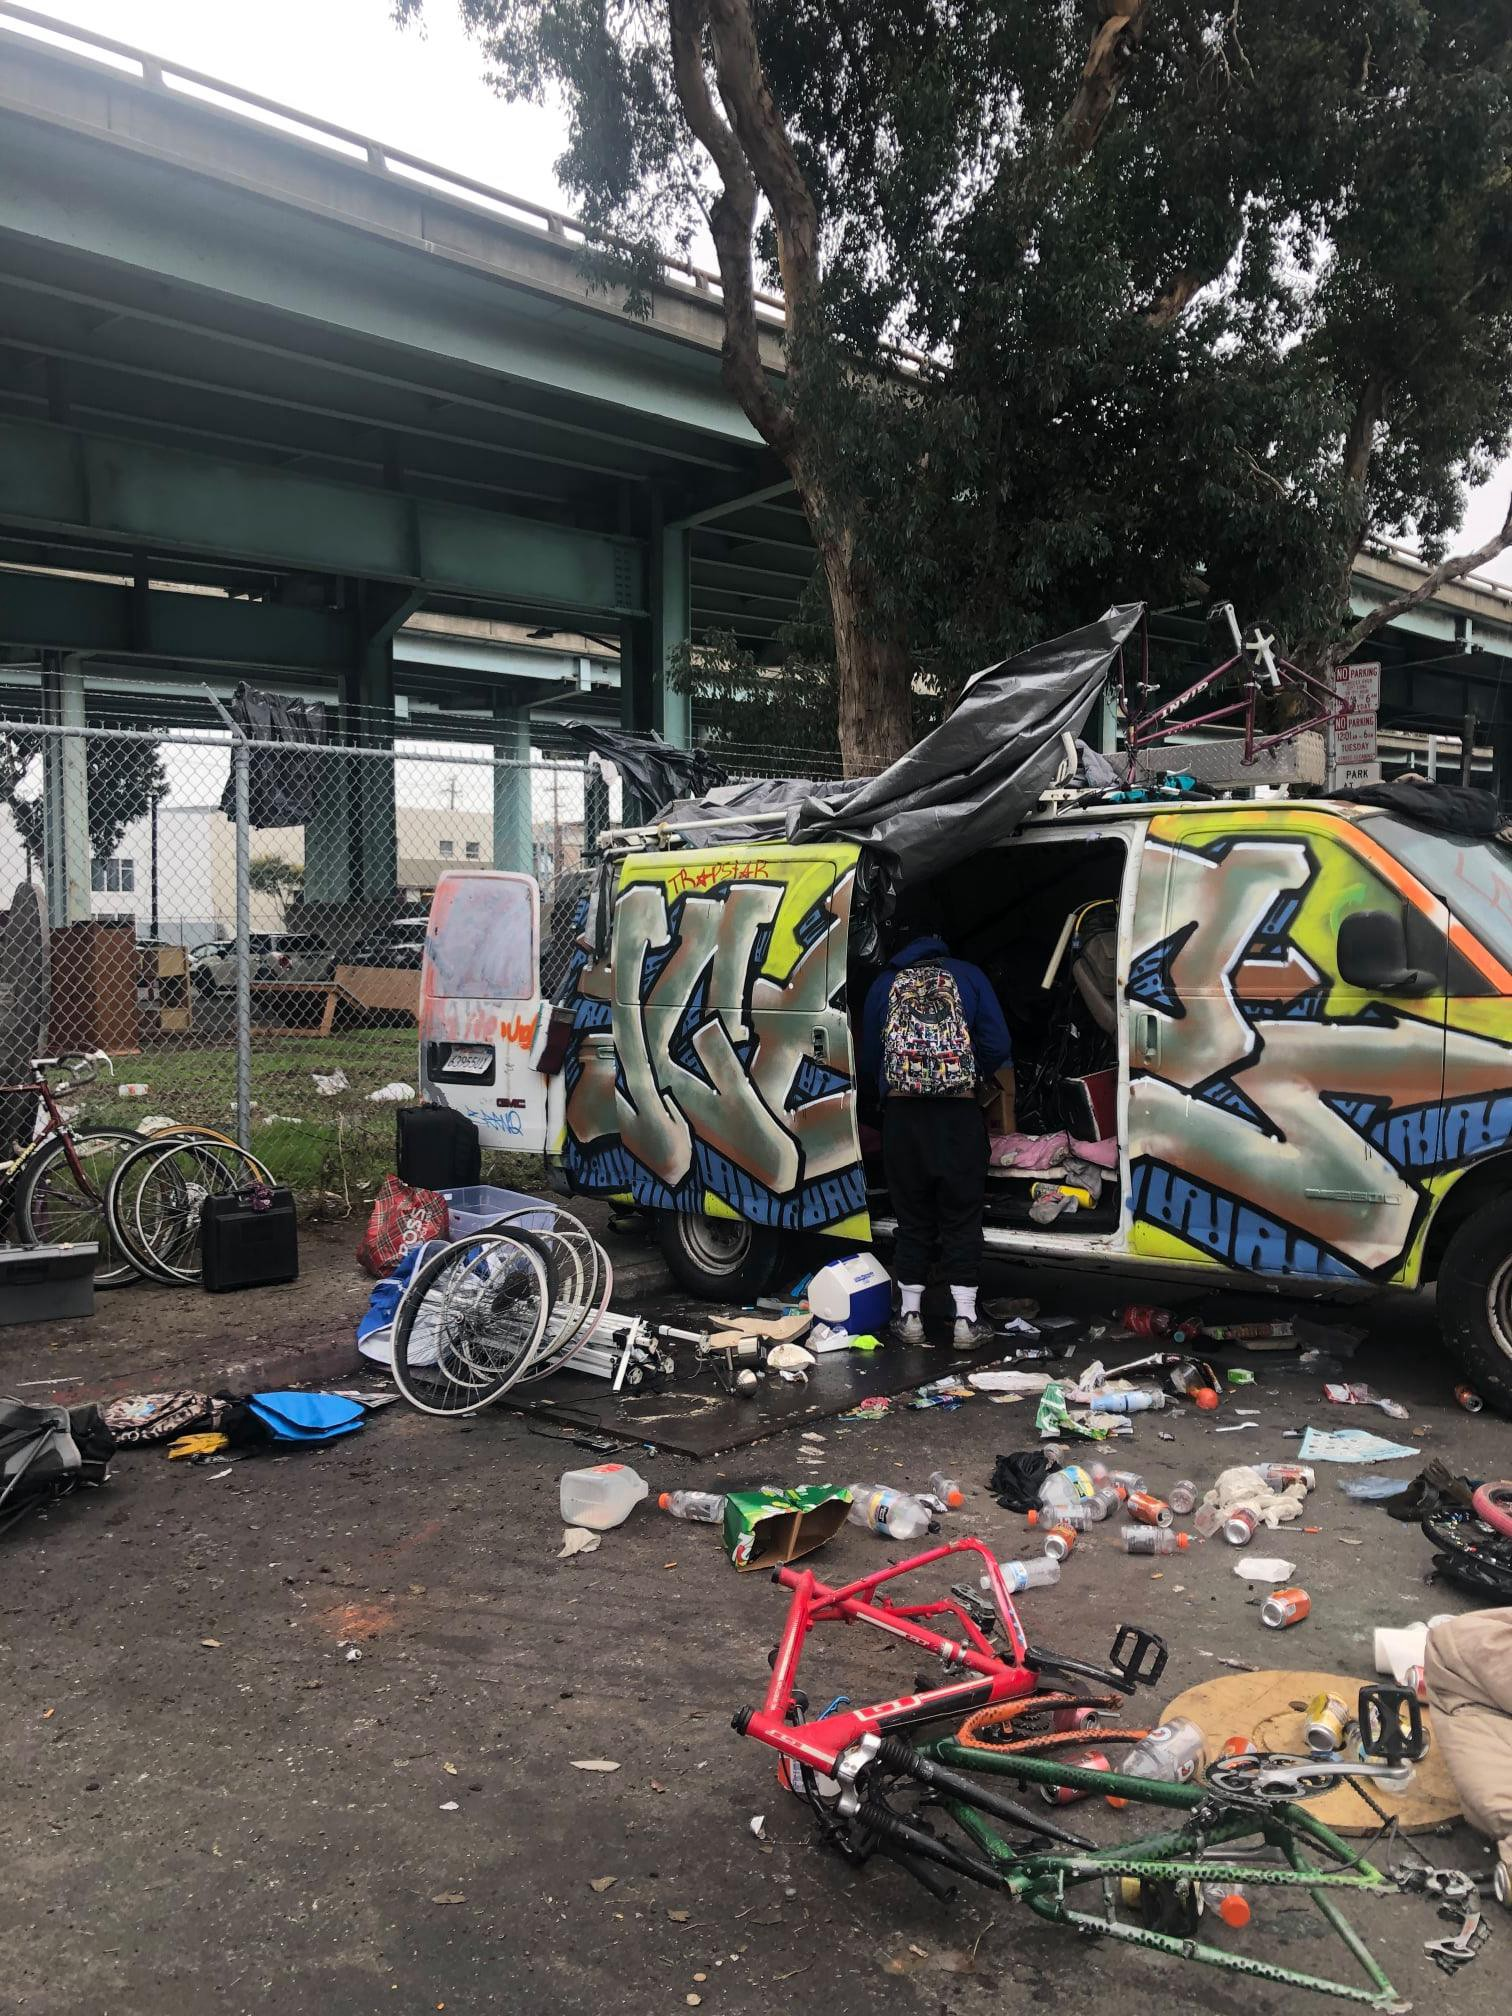 A figure stands in the open door of a gratified van, surrounded by bike parts, a cooler, and other supplies